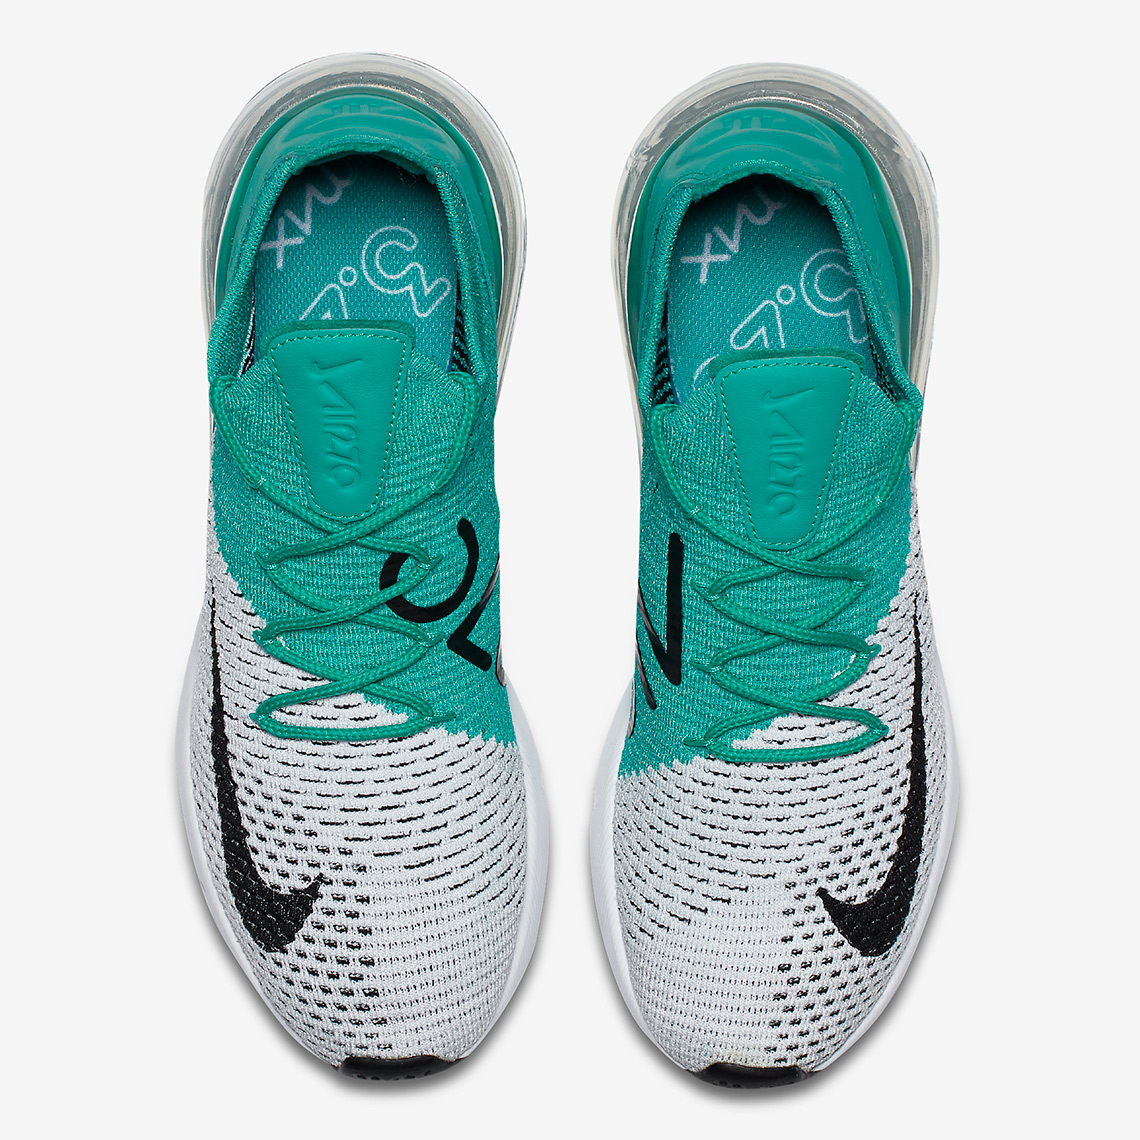 the best attitude ba0c9 958a5 Nike Air Max 270 Flyknit Release Info + Official Images ...